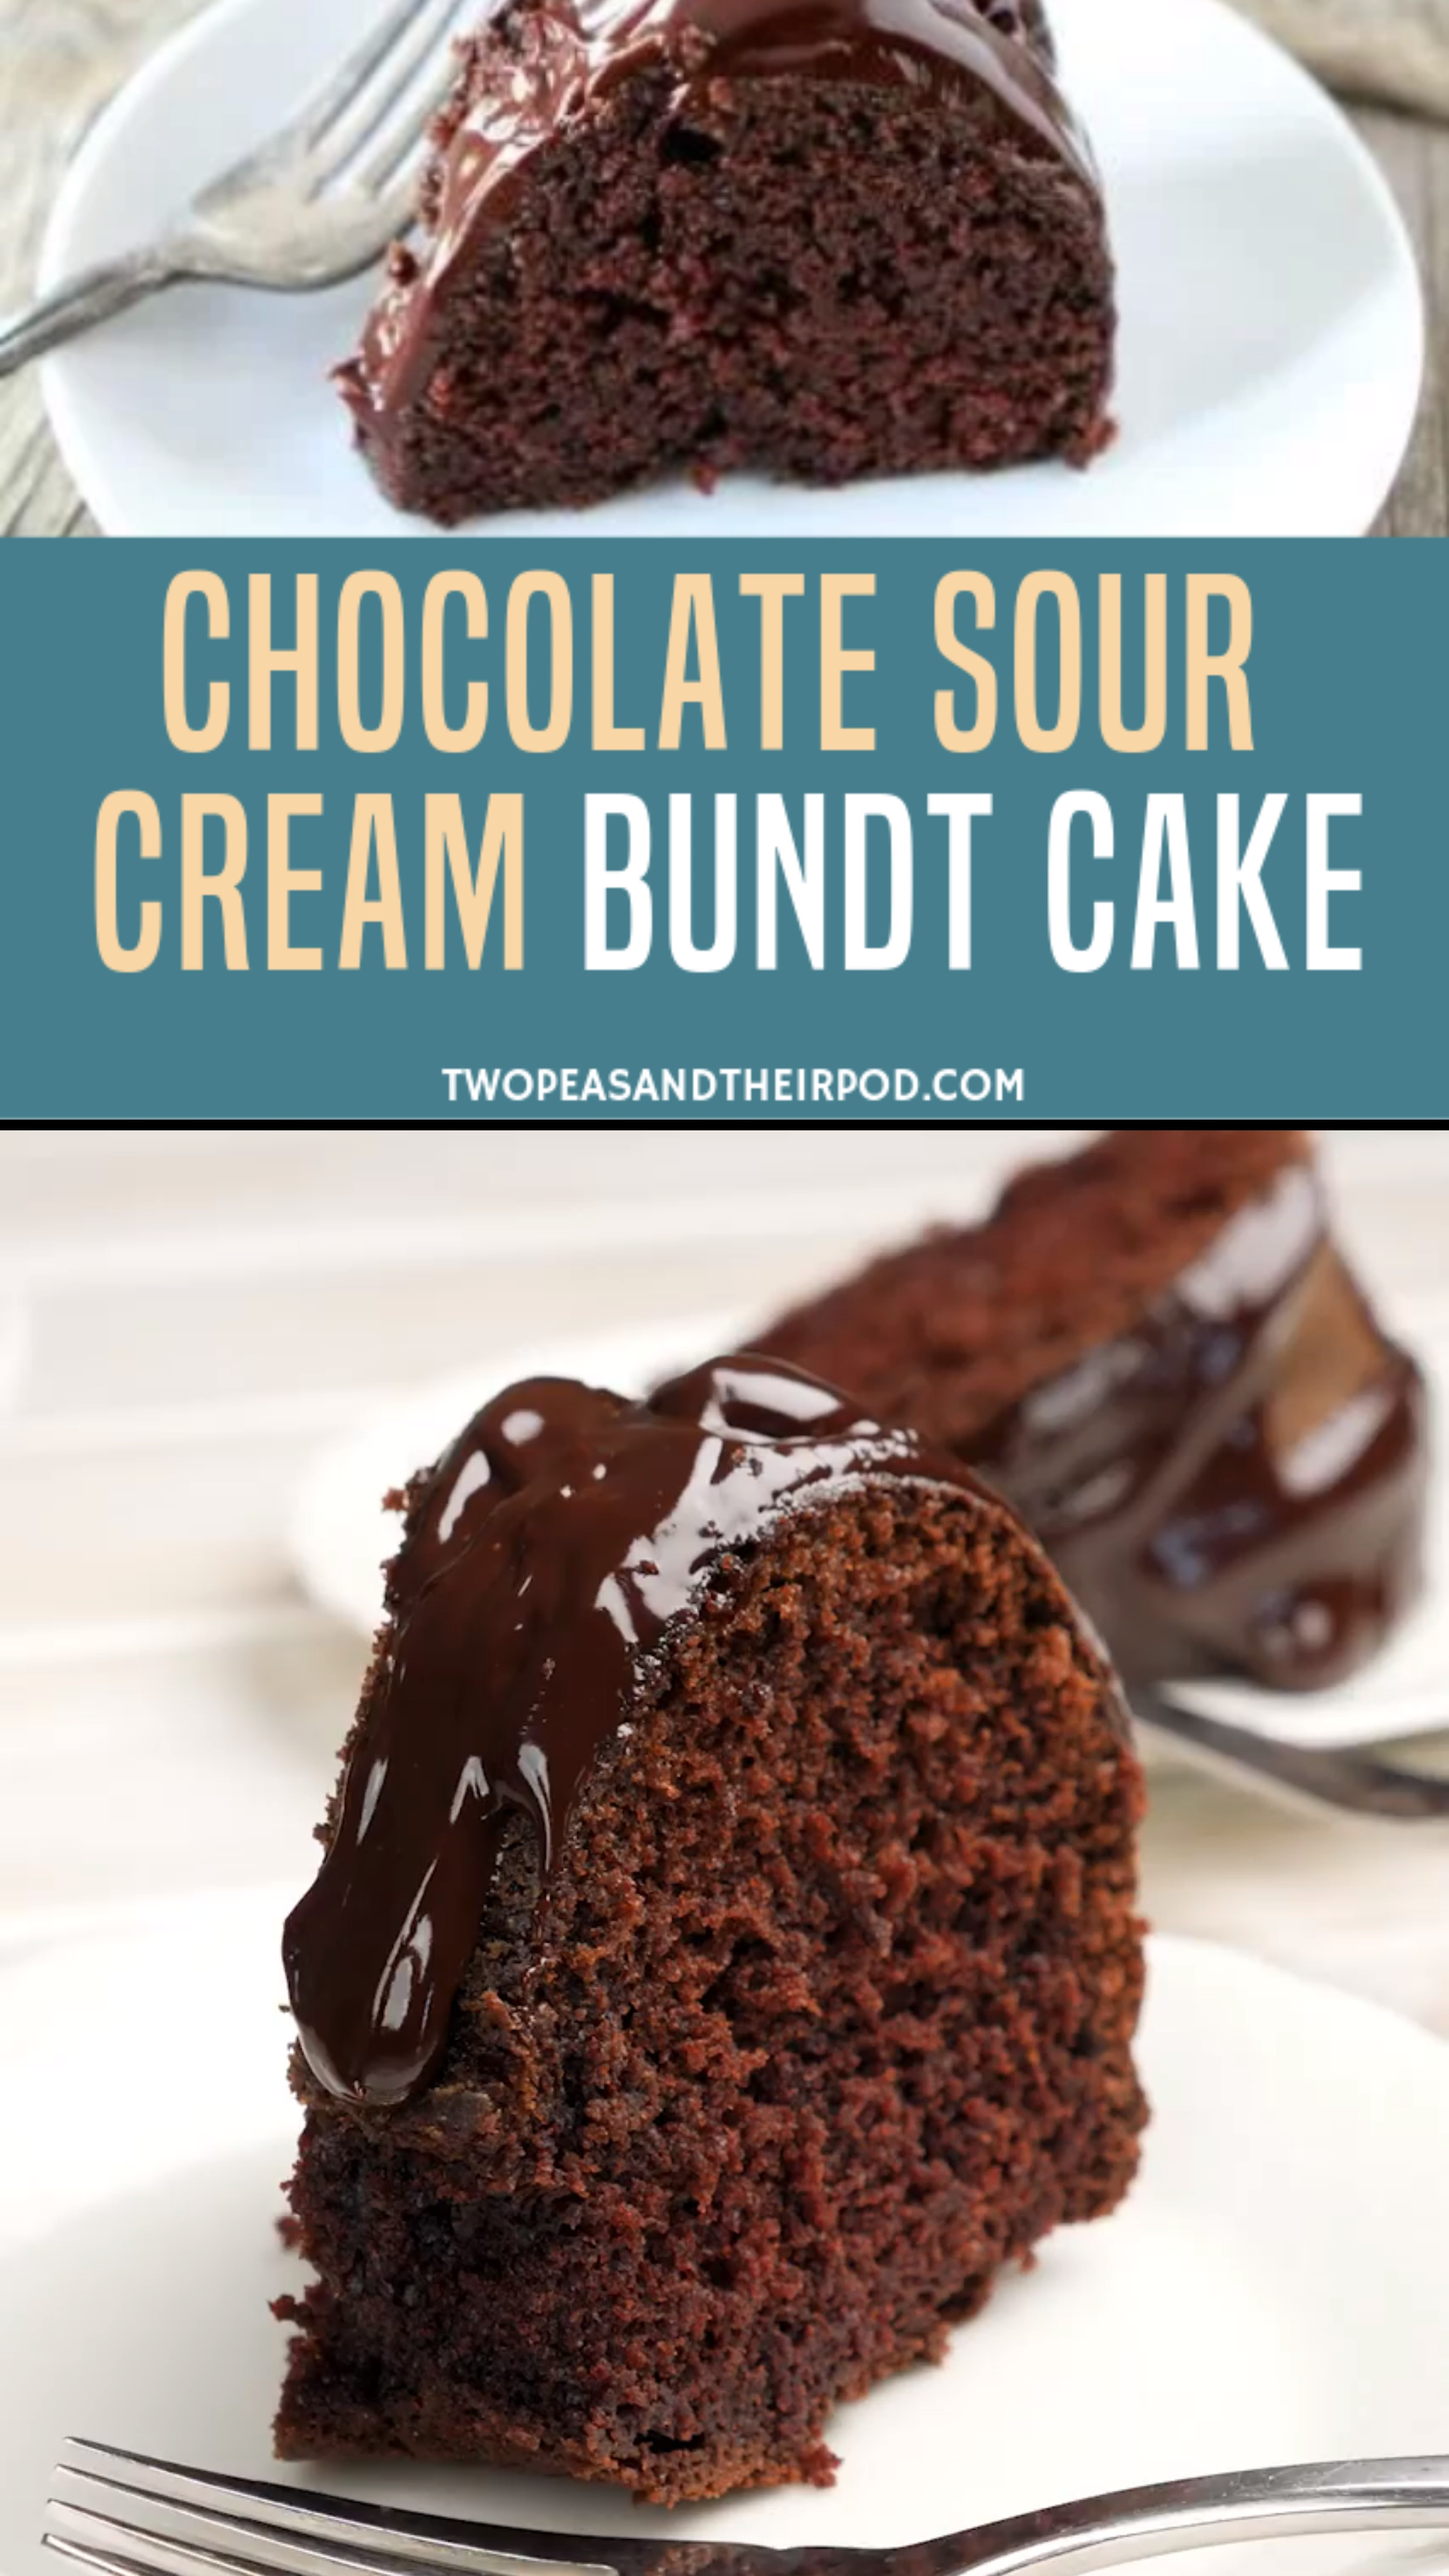 Chocolate Sour Cream Bundt Cake Video Chocolate Cake Recipe Easy Amazing Chocolate Cake Recipe Best Chocolate Cake